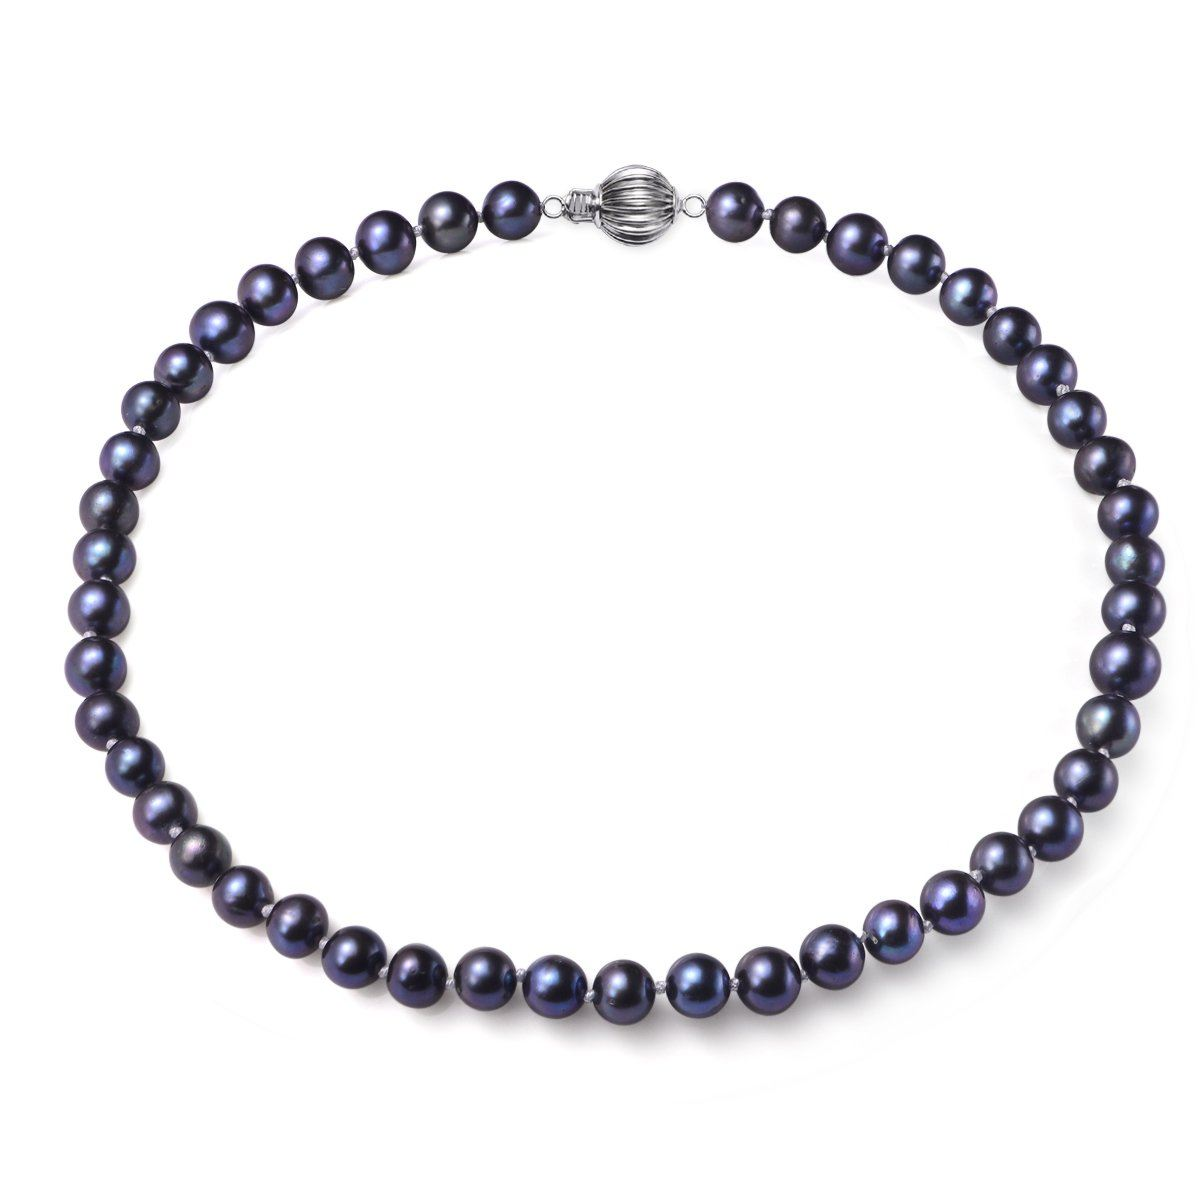 black, 7-8mm, aa, cultured freshwater pearl strand necklace with 925 sterling silver fluted ball